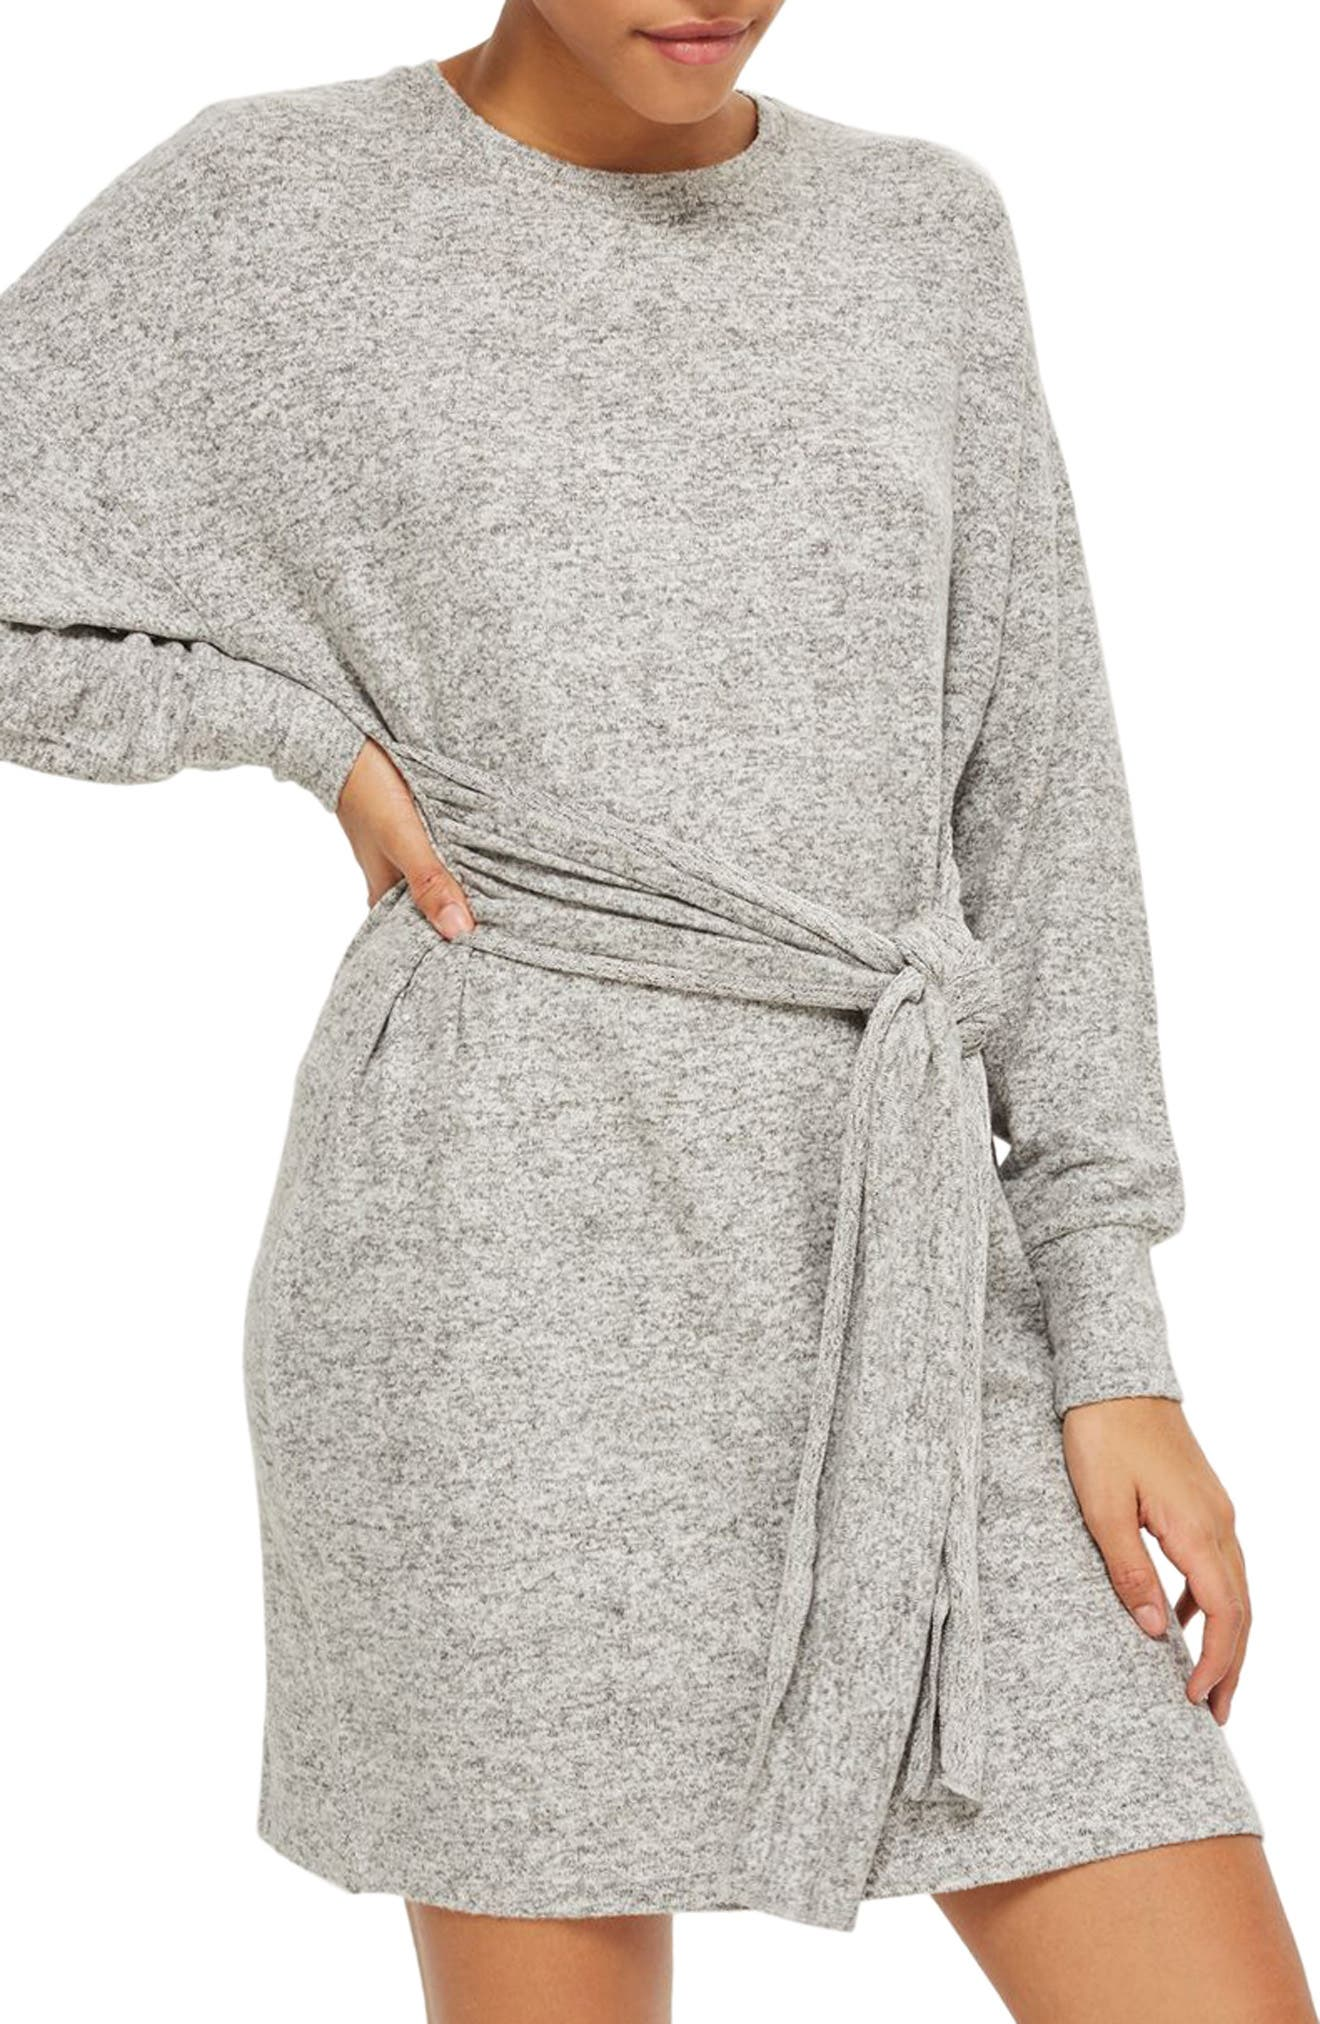 Topshop Tie Front Sweater Dress